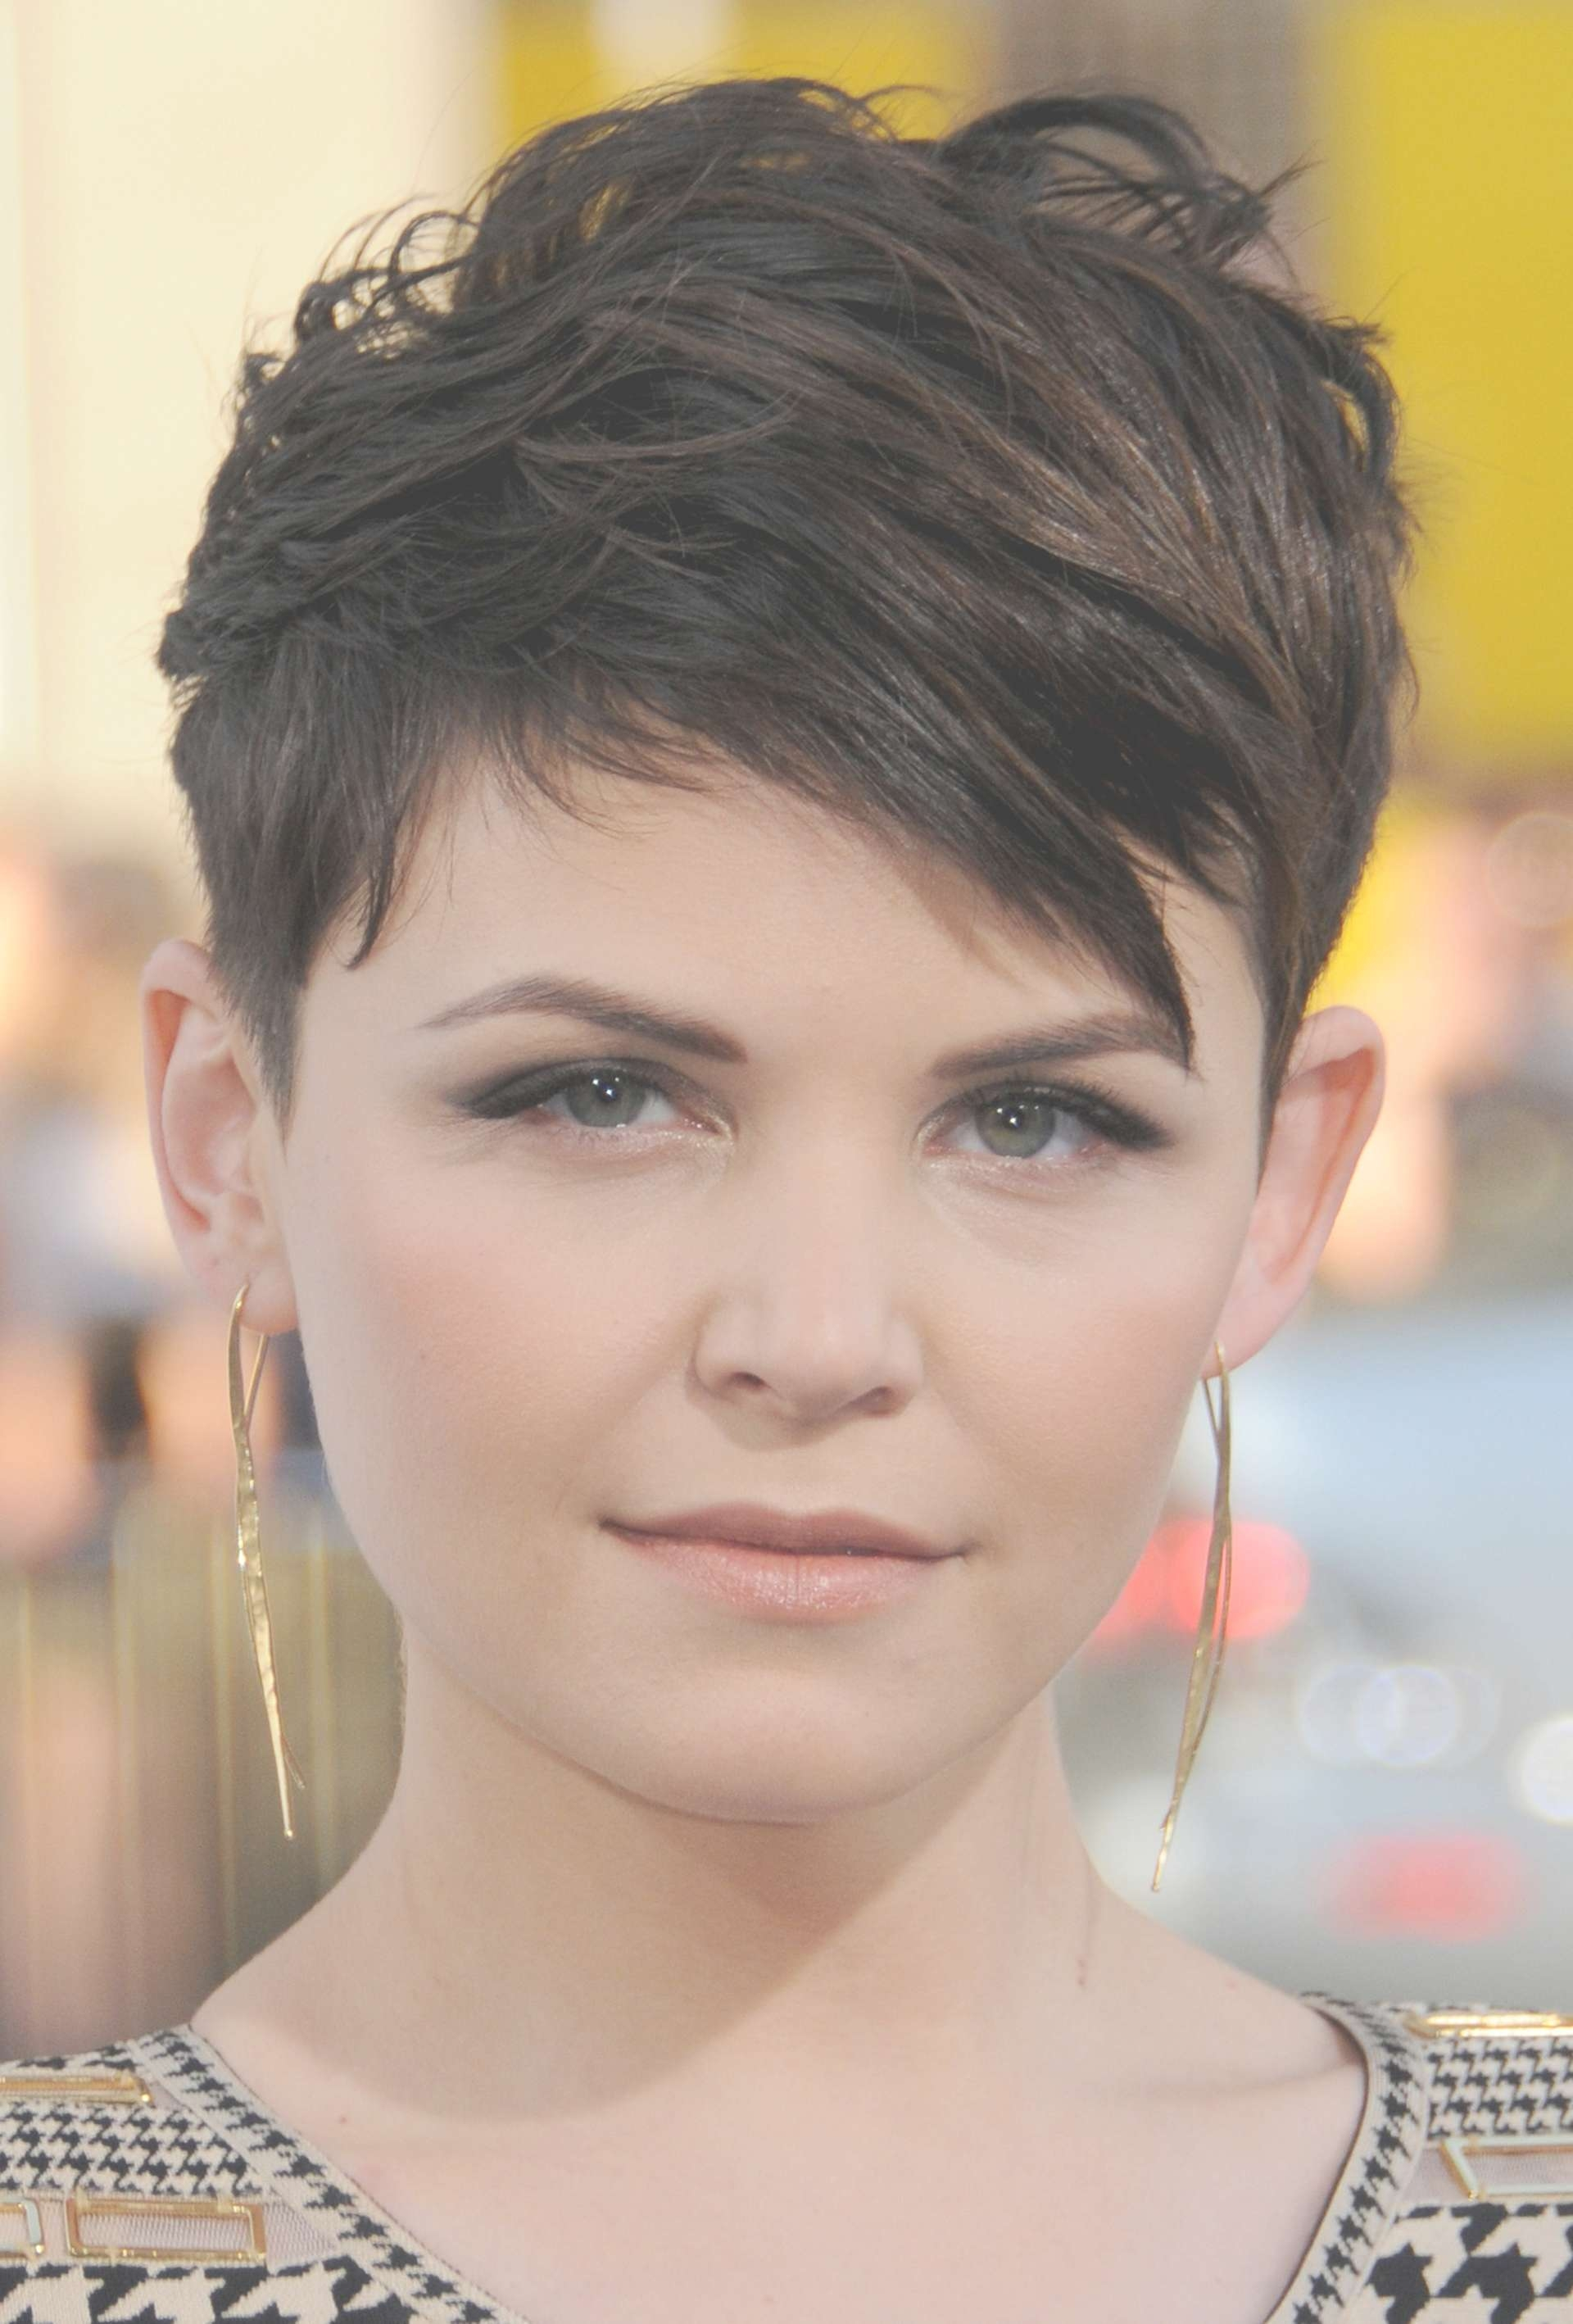 Ginnifer Goodwin Short Pixie Hairstyle – Pixie Haircuts For Short Inside Current Actress Pixie Hairstyles (View 9 of 15)